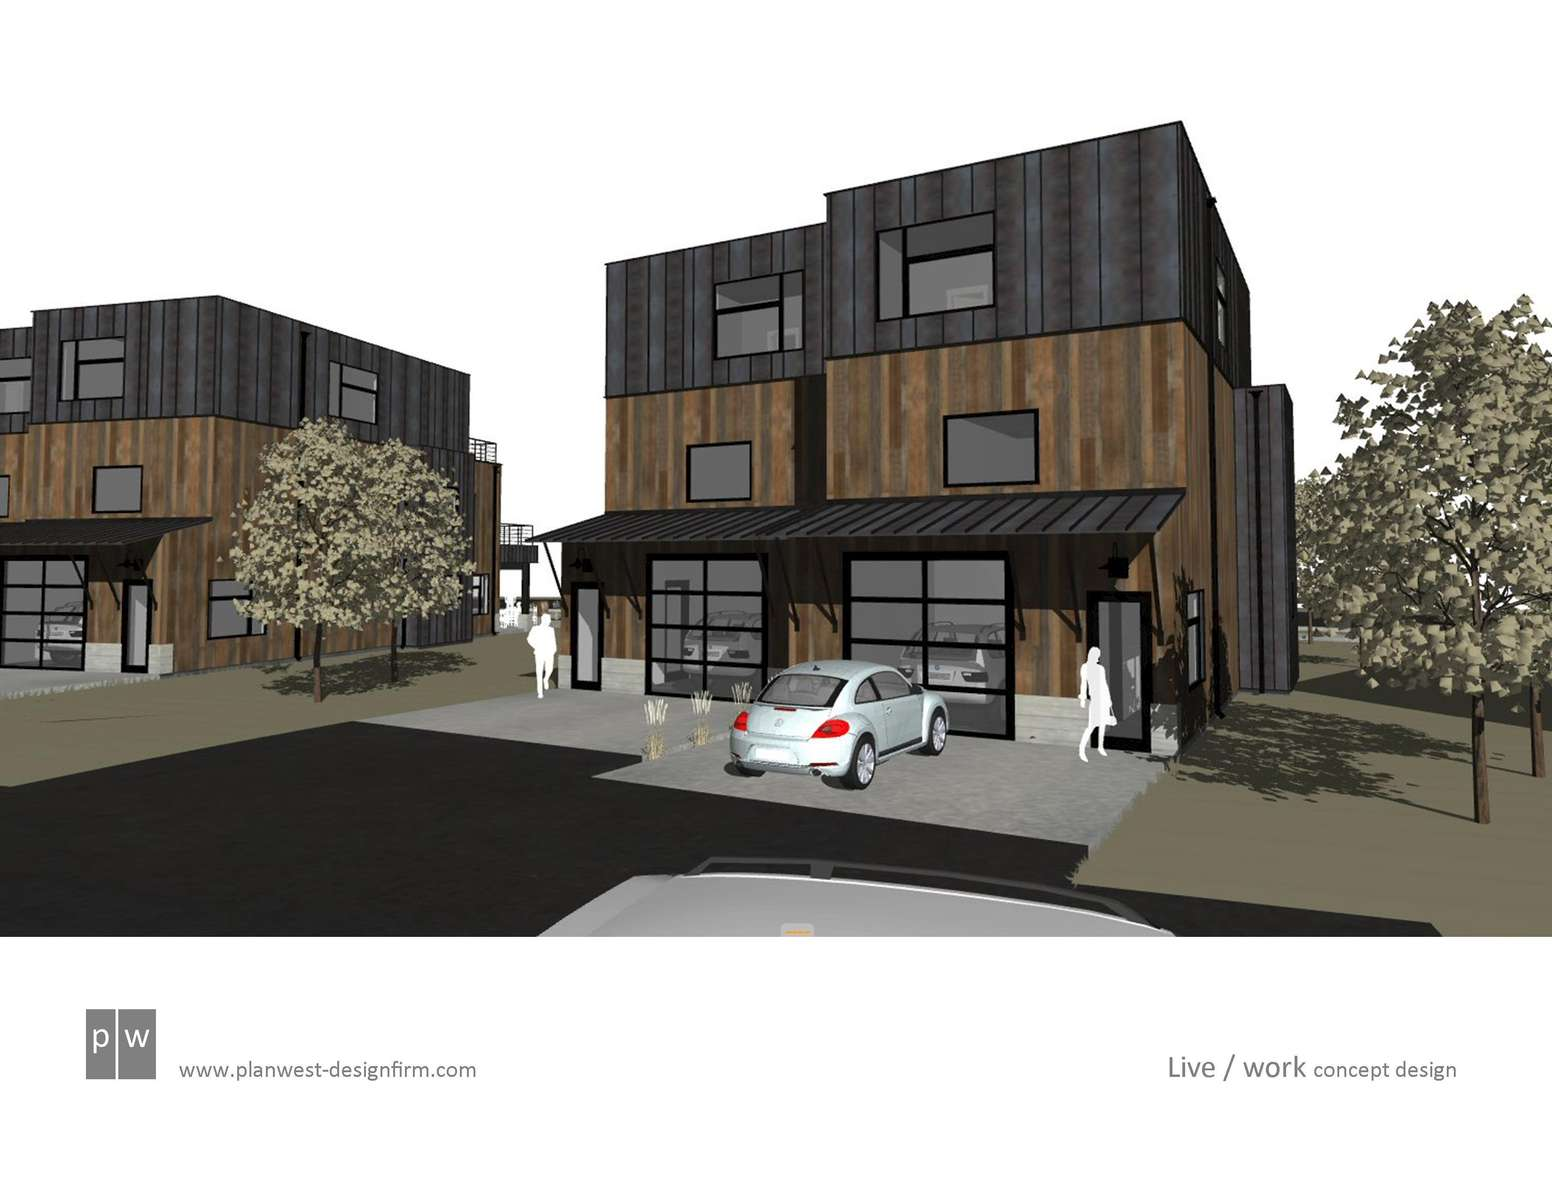 plan-west-design-firm-_-projects-in-process-709